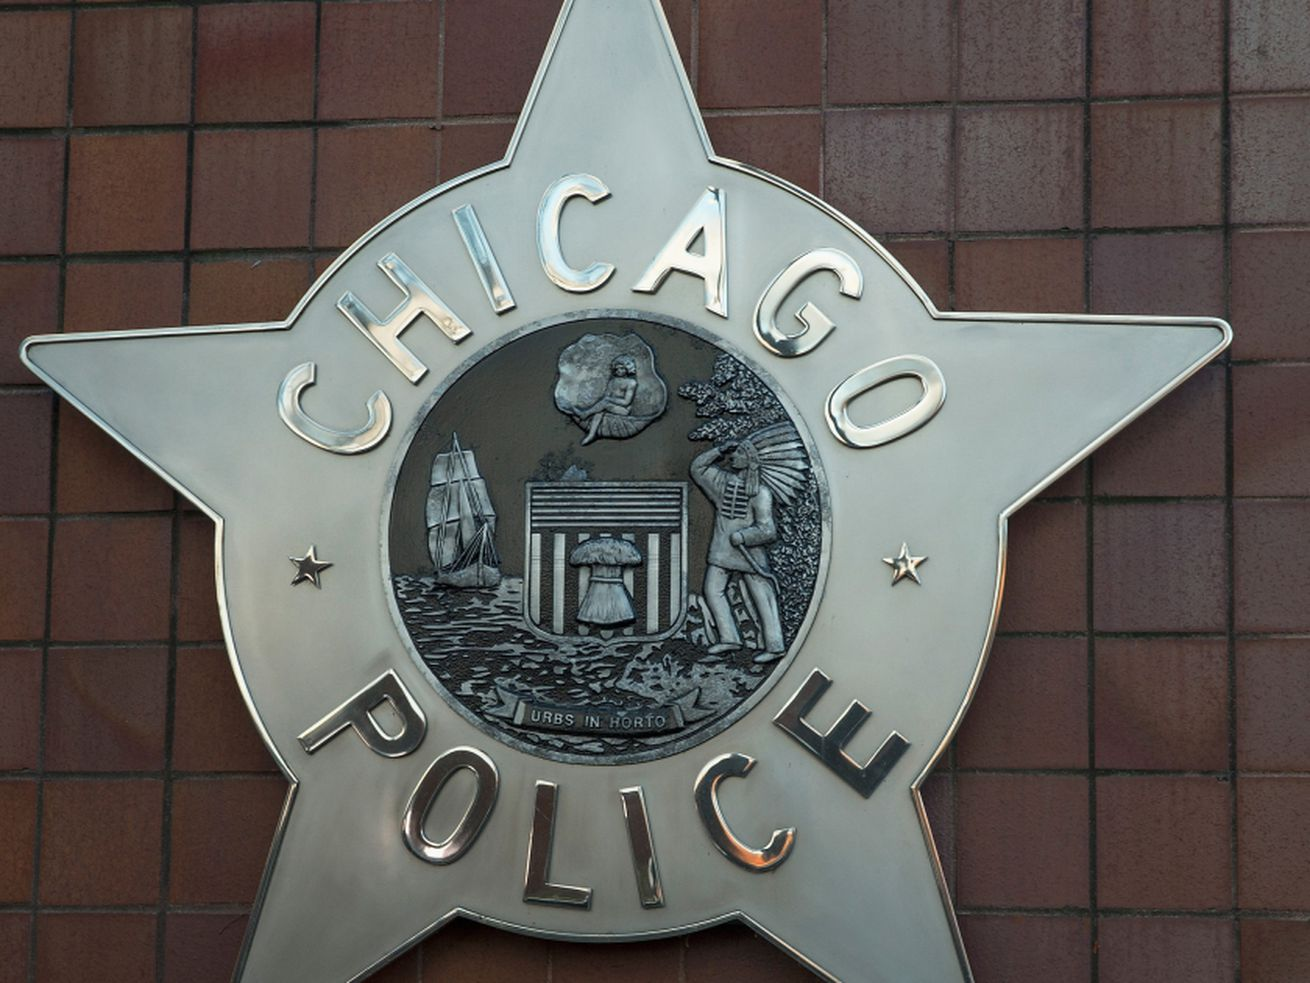 Three people were arrested March 19, 2021 after shots were fired in the Loop.